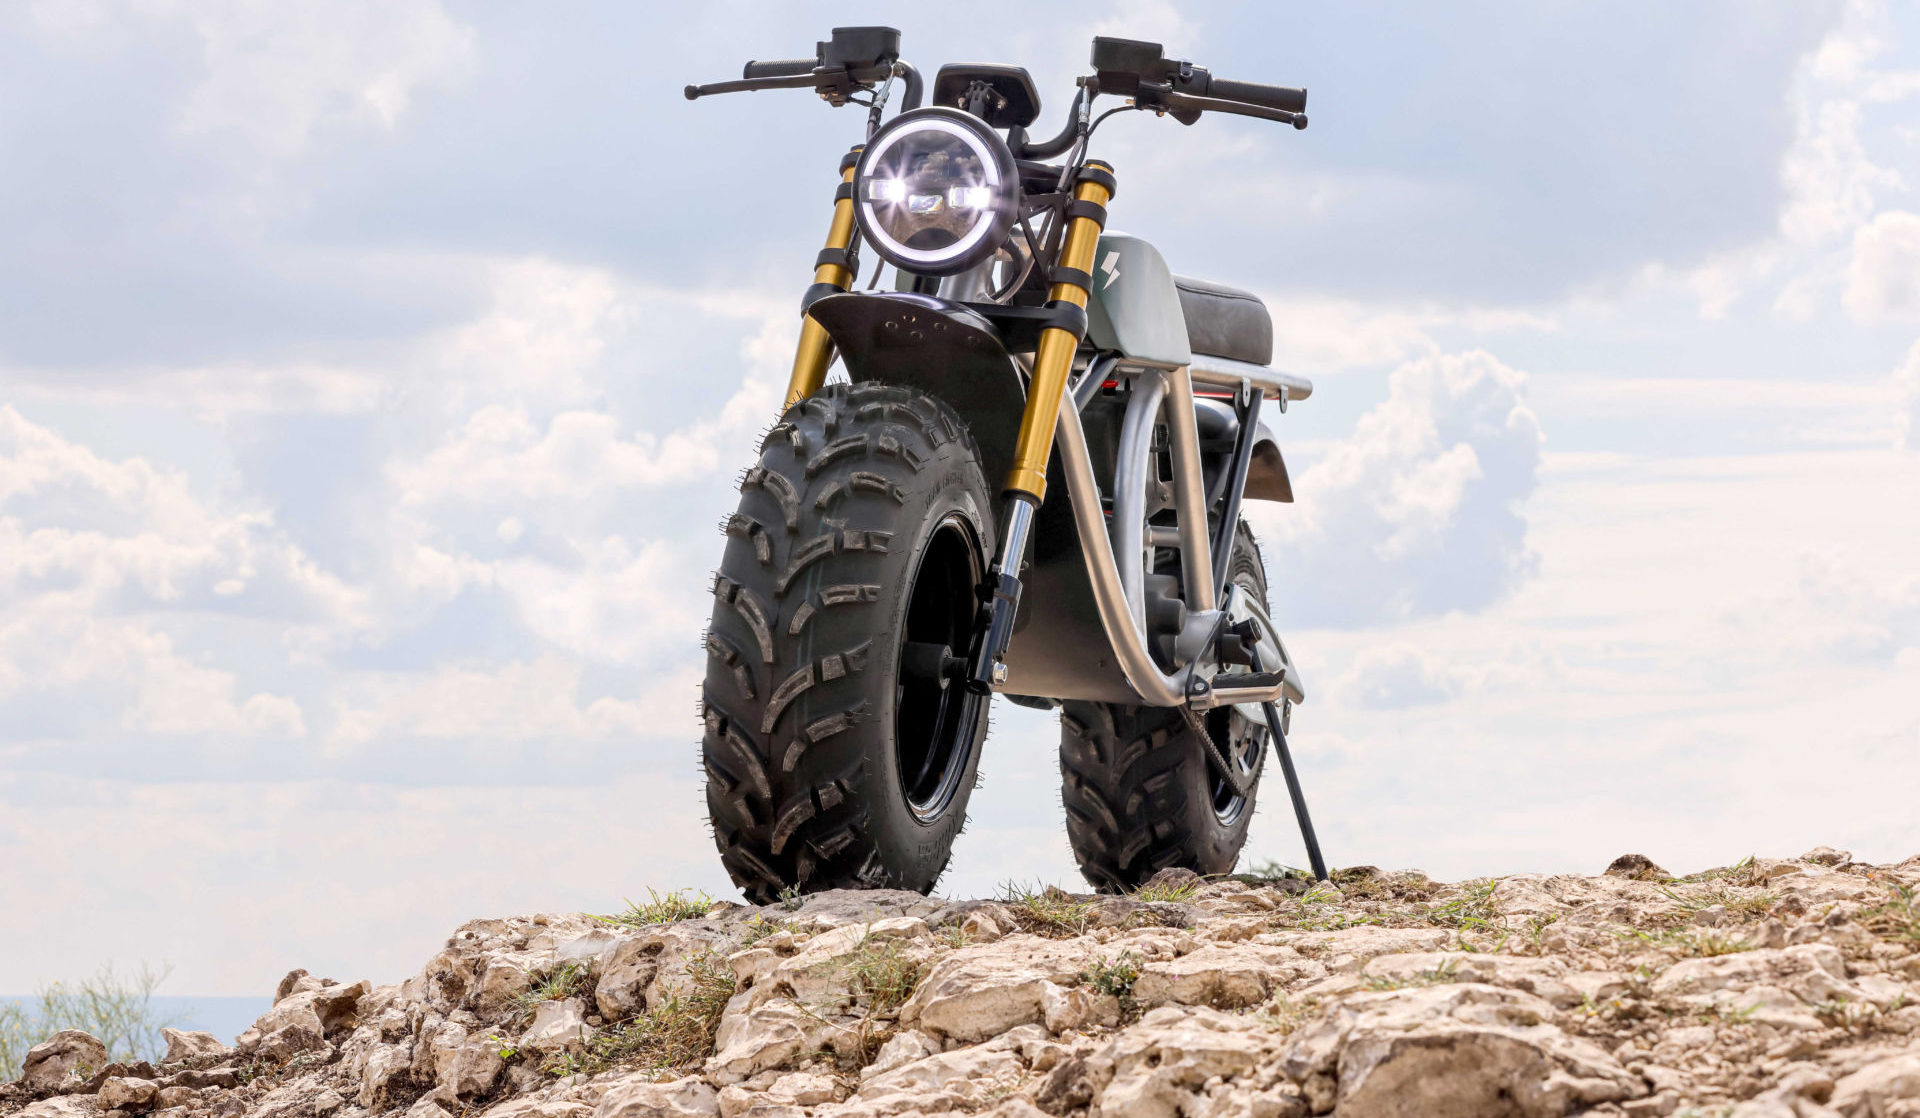 The Volcon Grunt, a new electric off-road motorcycle. Photo courtesy Volcon.